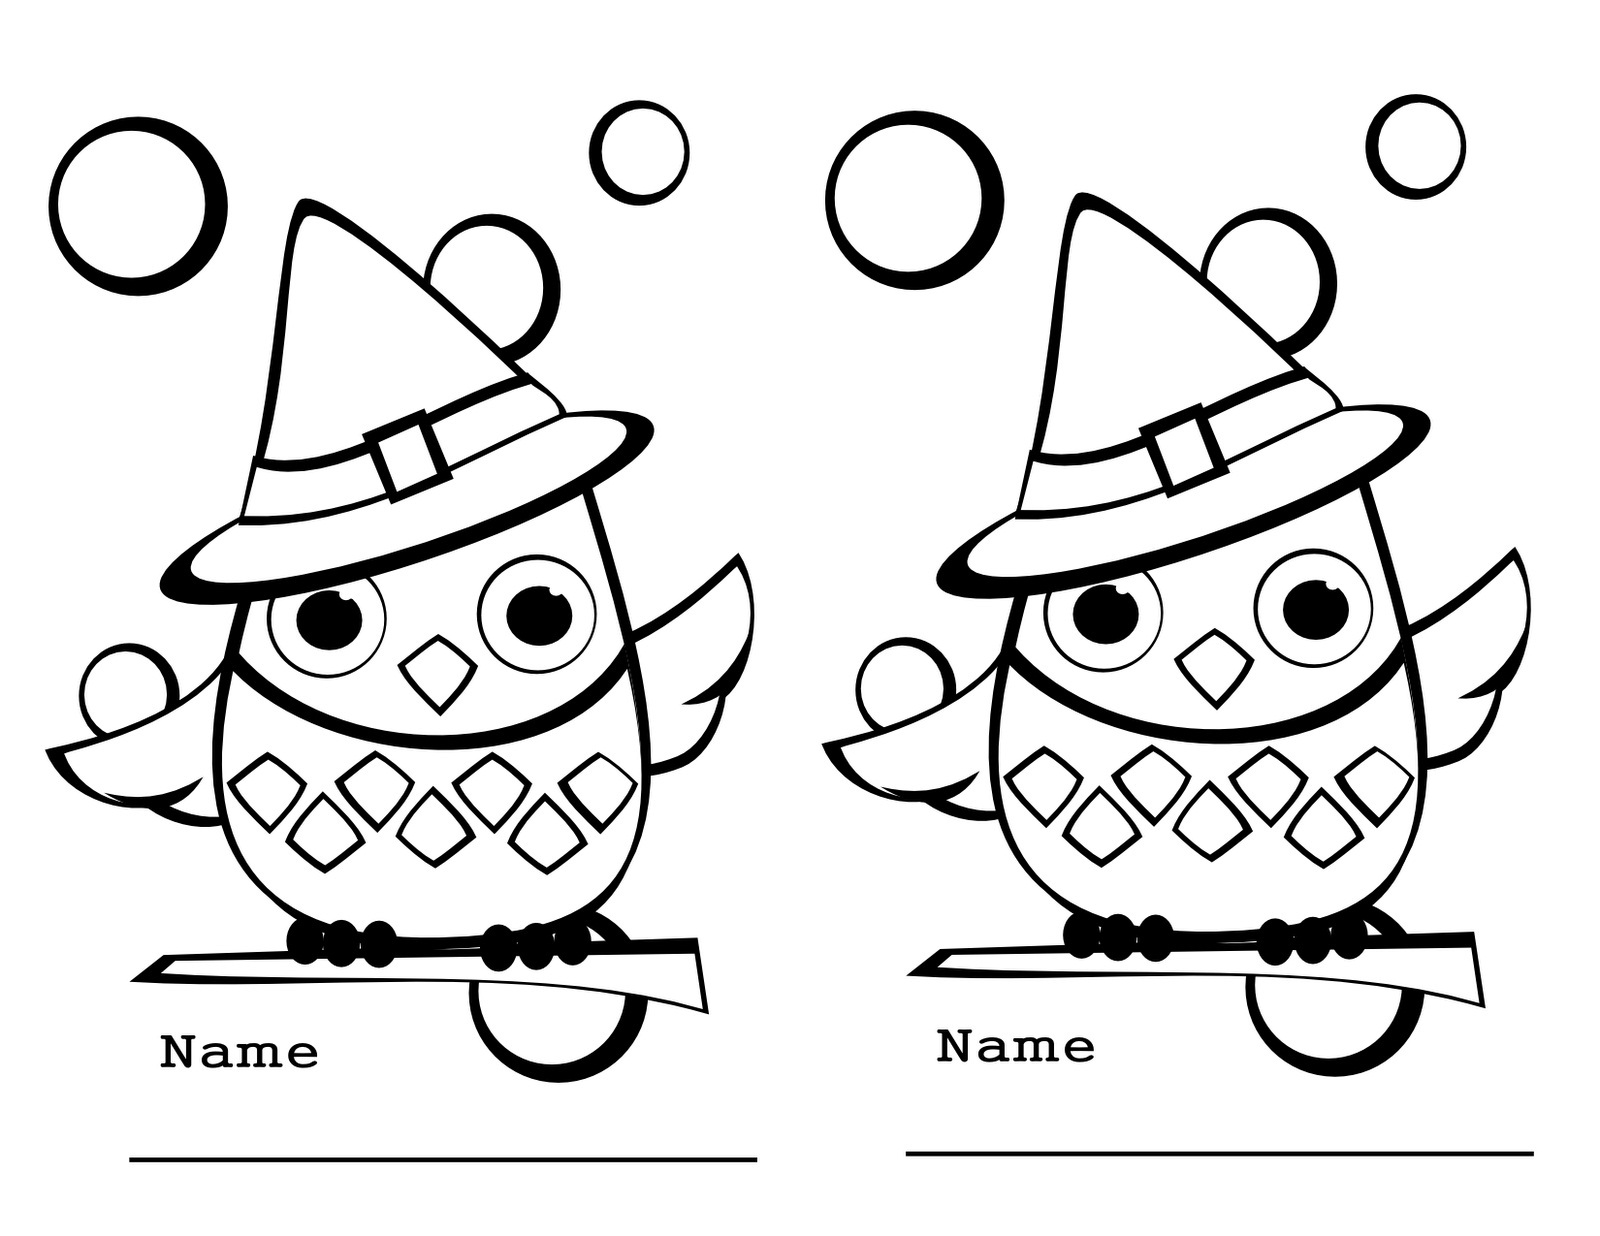 Free printable kindergarten coloring pages for kids for Fun coloring pages for kids